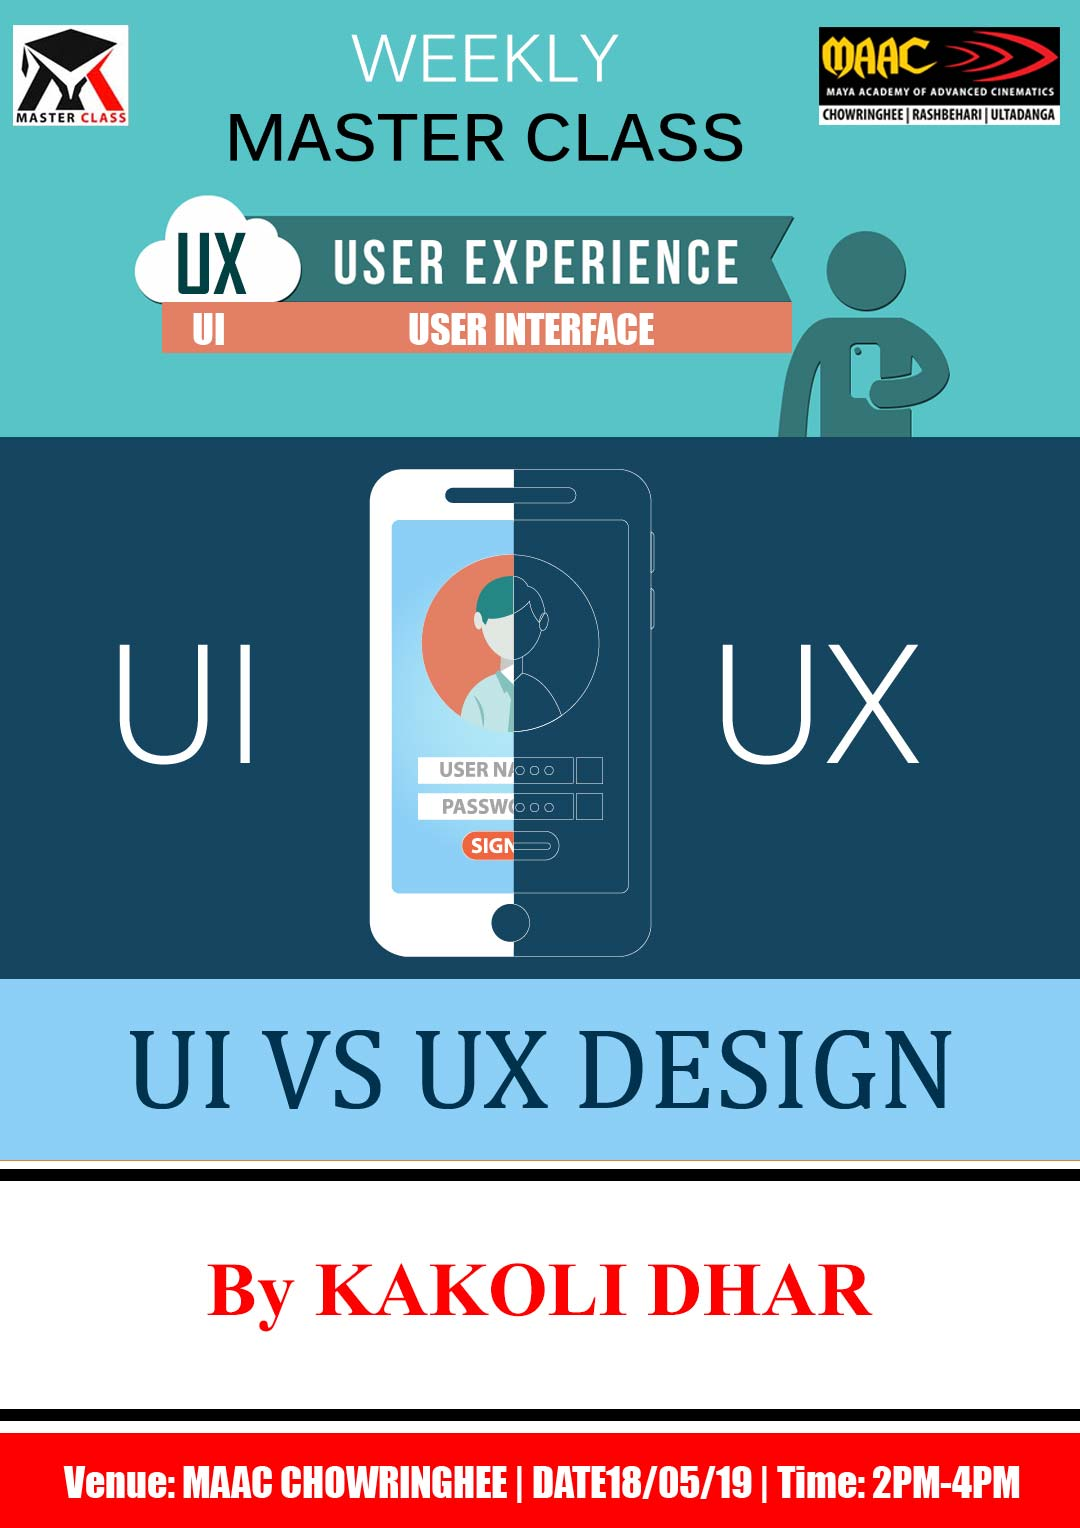 Weekly Master Class on UI UX User Experience